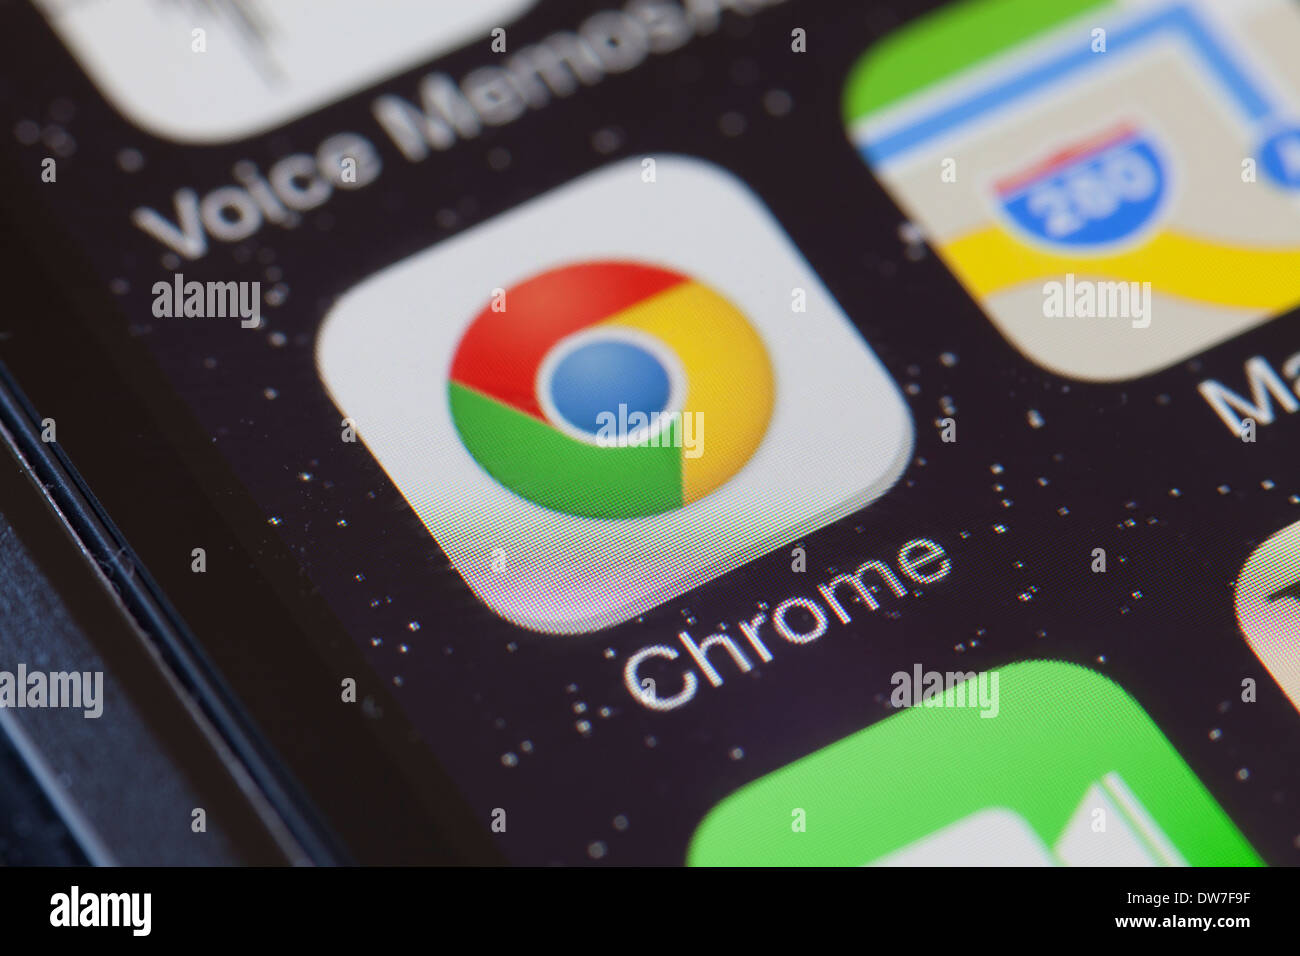 Chrome web browser app icon on mobile phone. - Stock Image